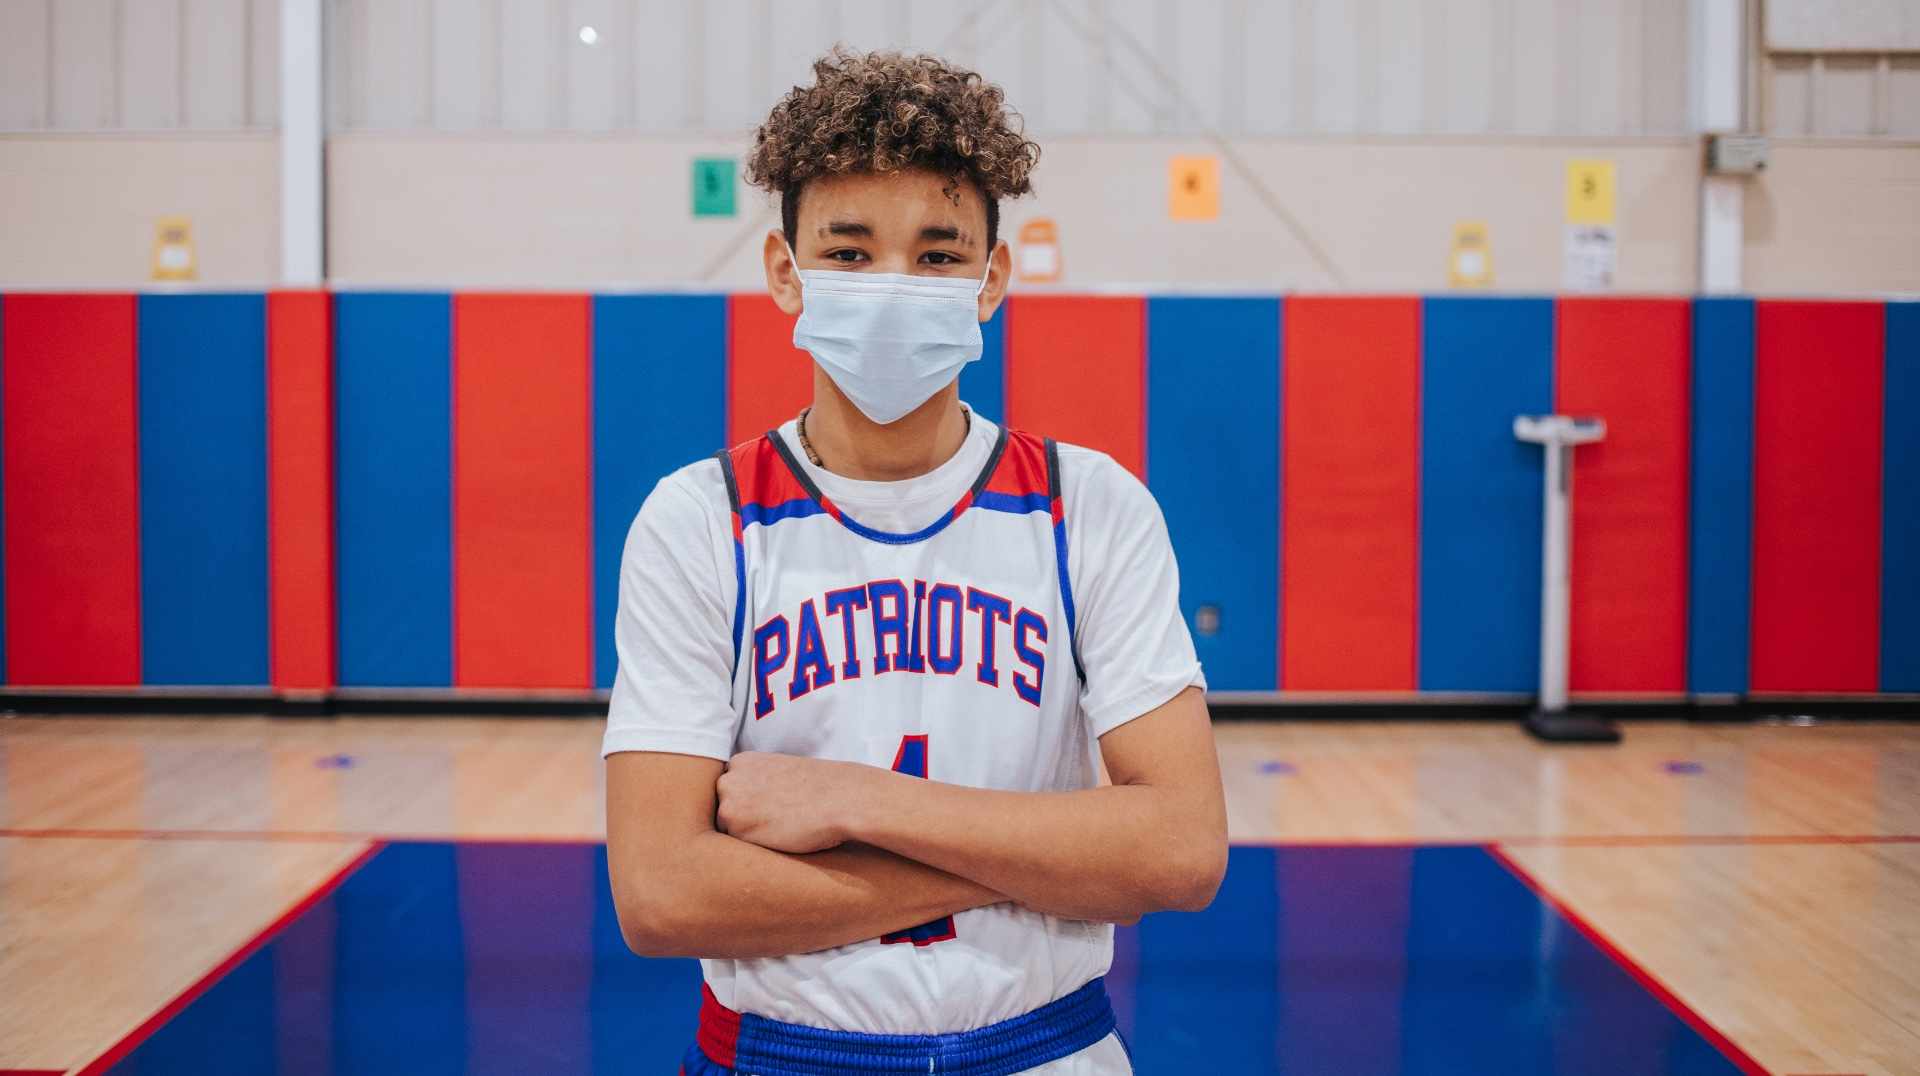 AJ stands in the middle of the basketball court in his white Patriots team uniform and a face mask. He has his arms crossed in front of his chest.